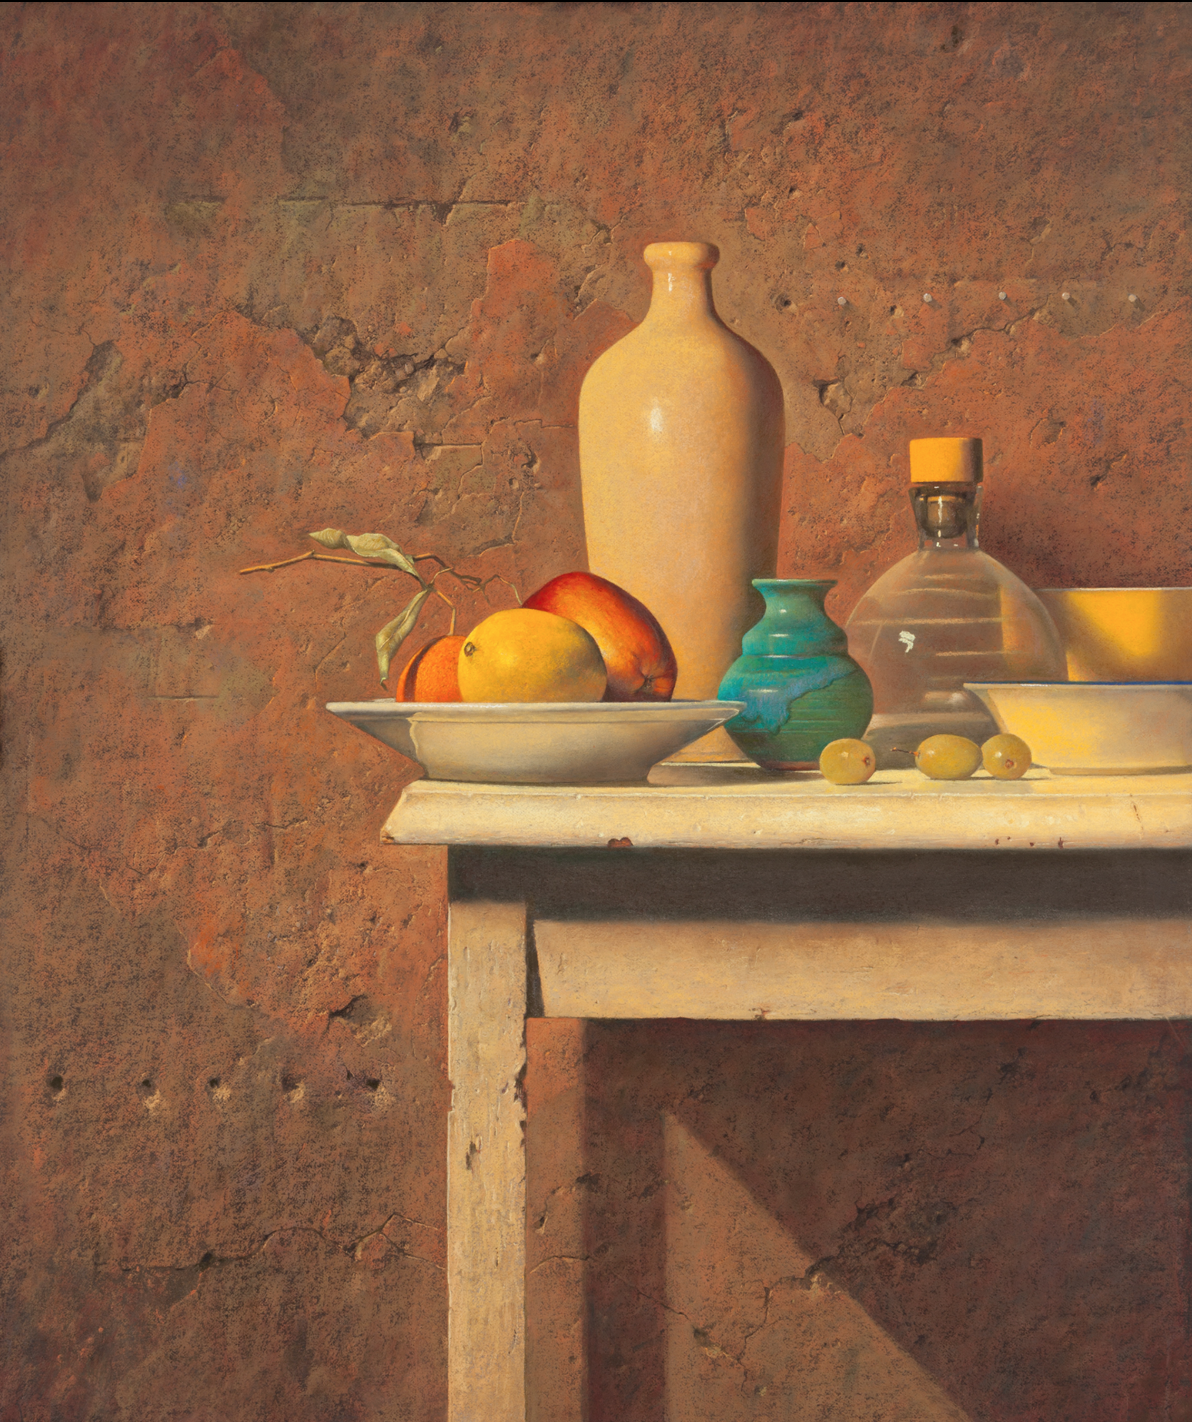 Ron Monsma, Blue and Yellow Vase on a White Table  Pastel, 24x20 in.